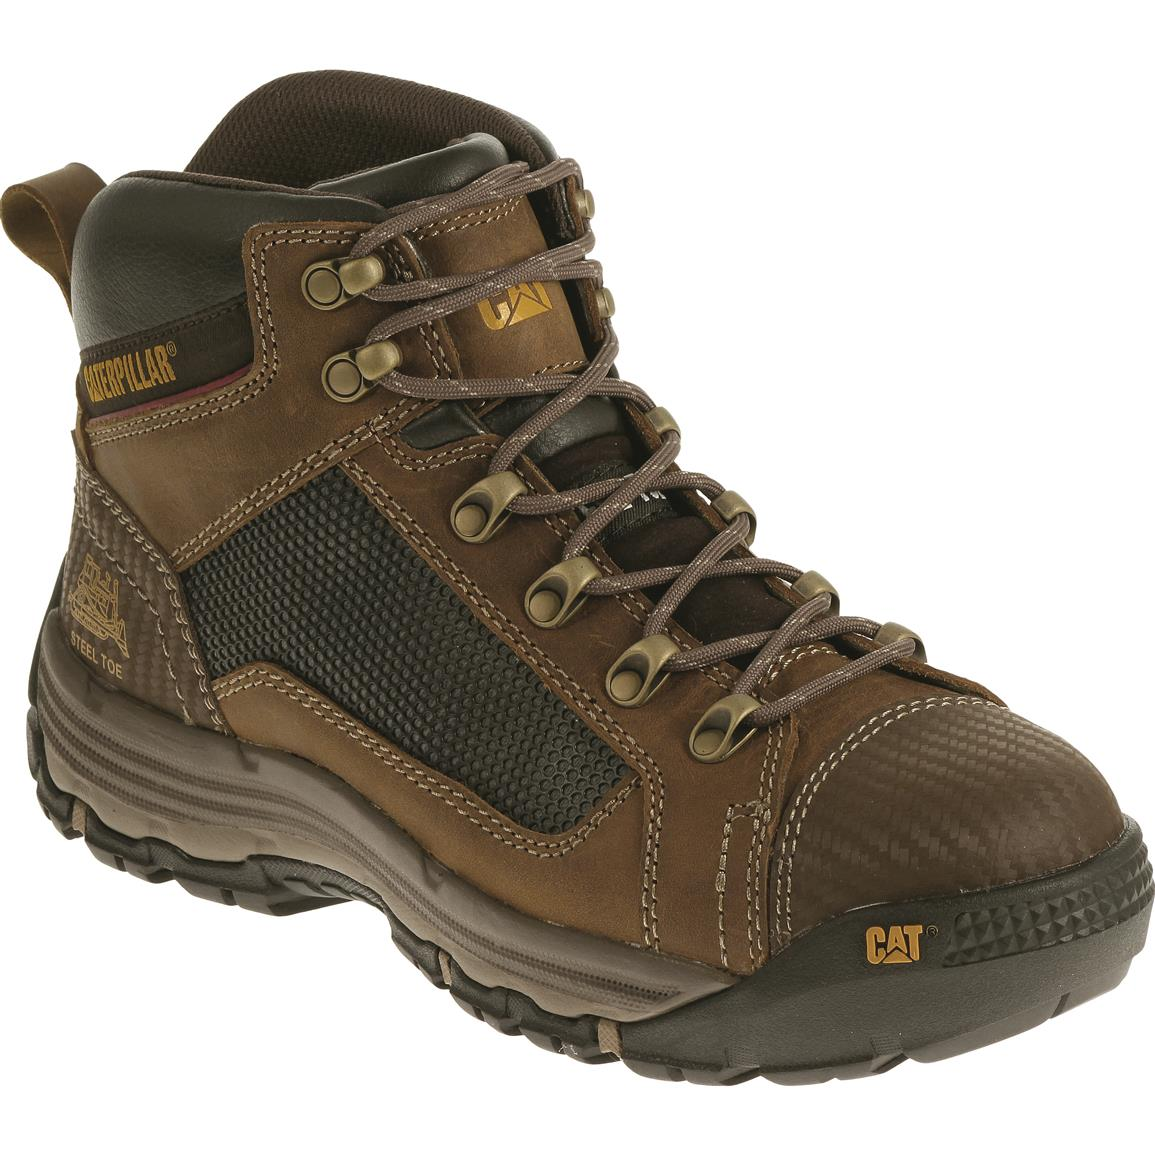 Cat Men's Convex Mid Steel Toe Work Boots, Dark Beige